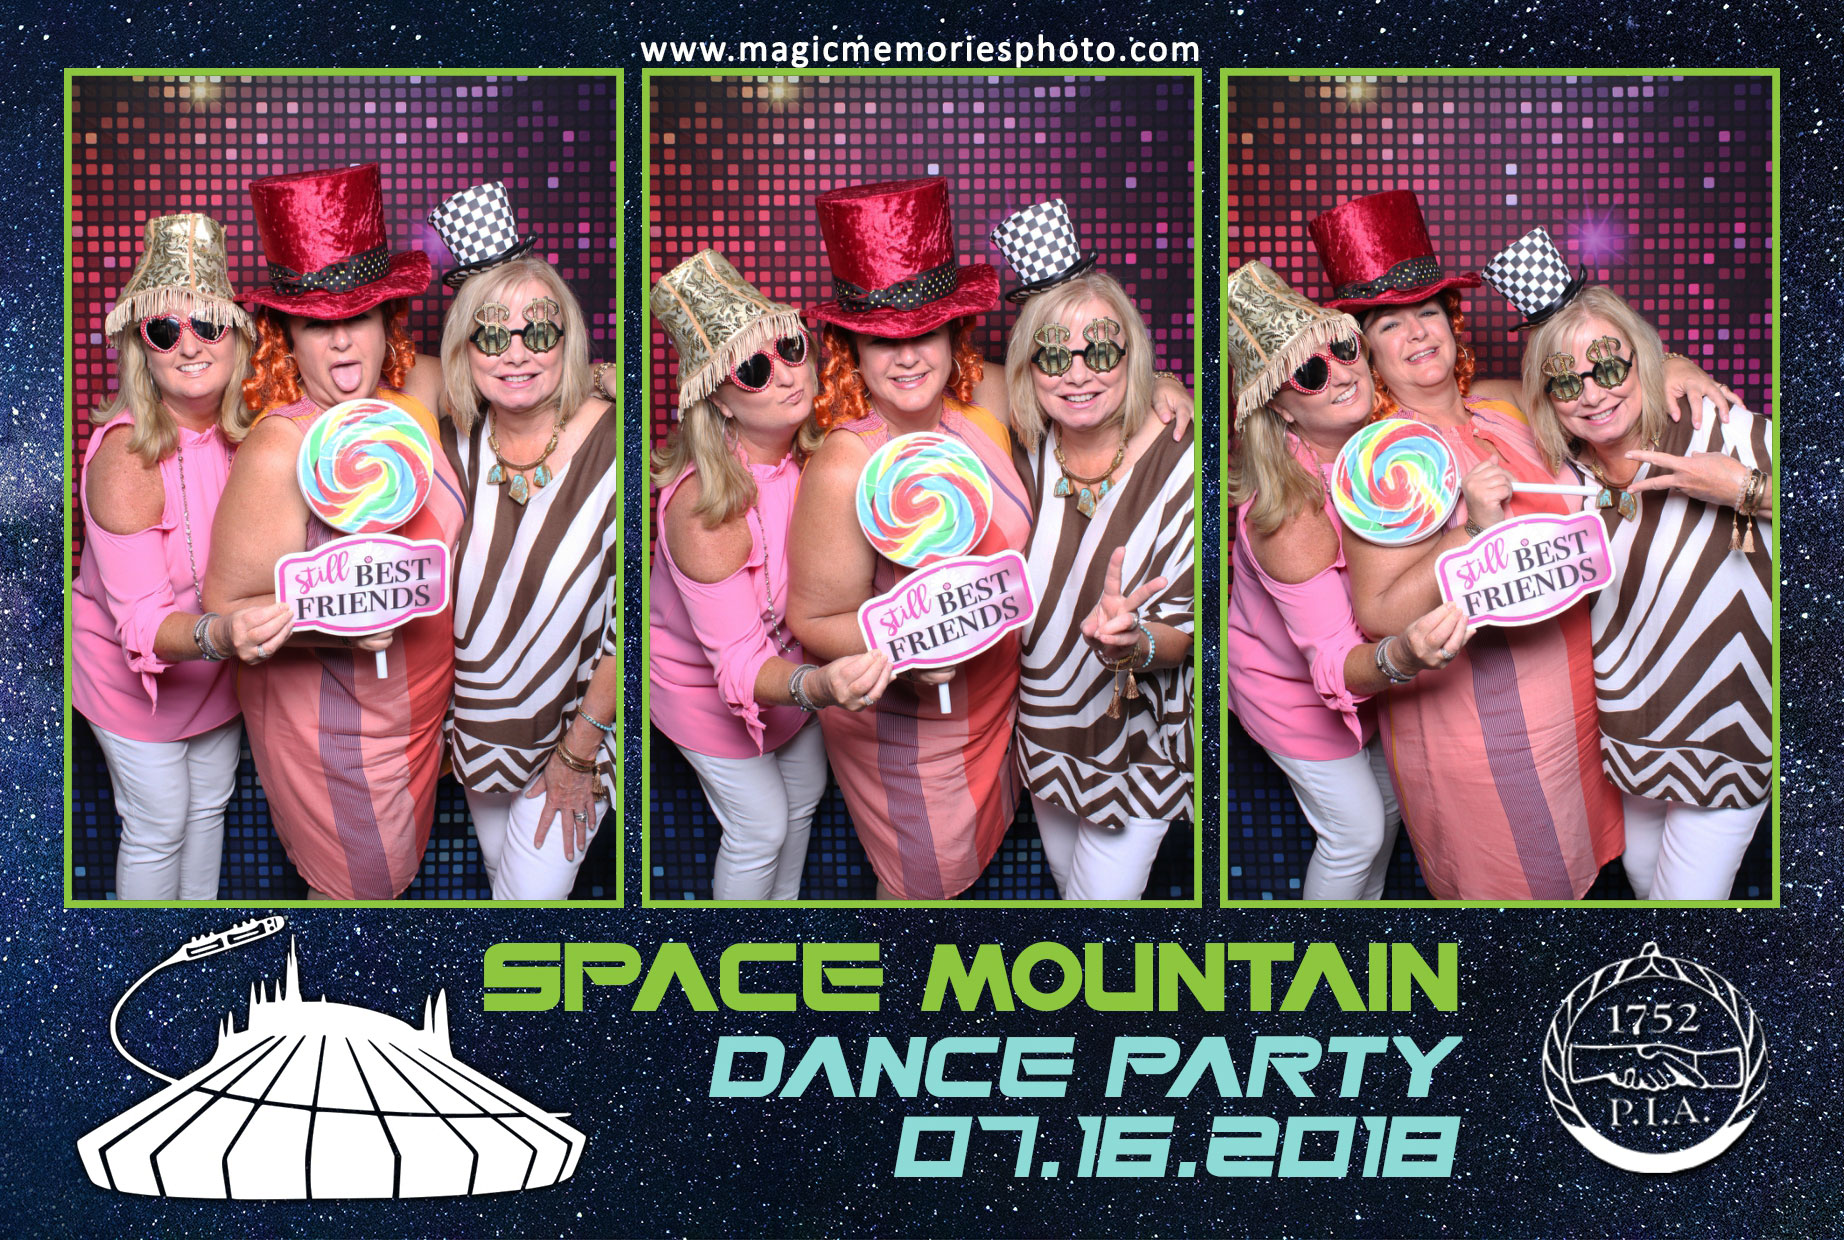 Fun photo booth for corporate party